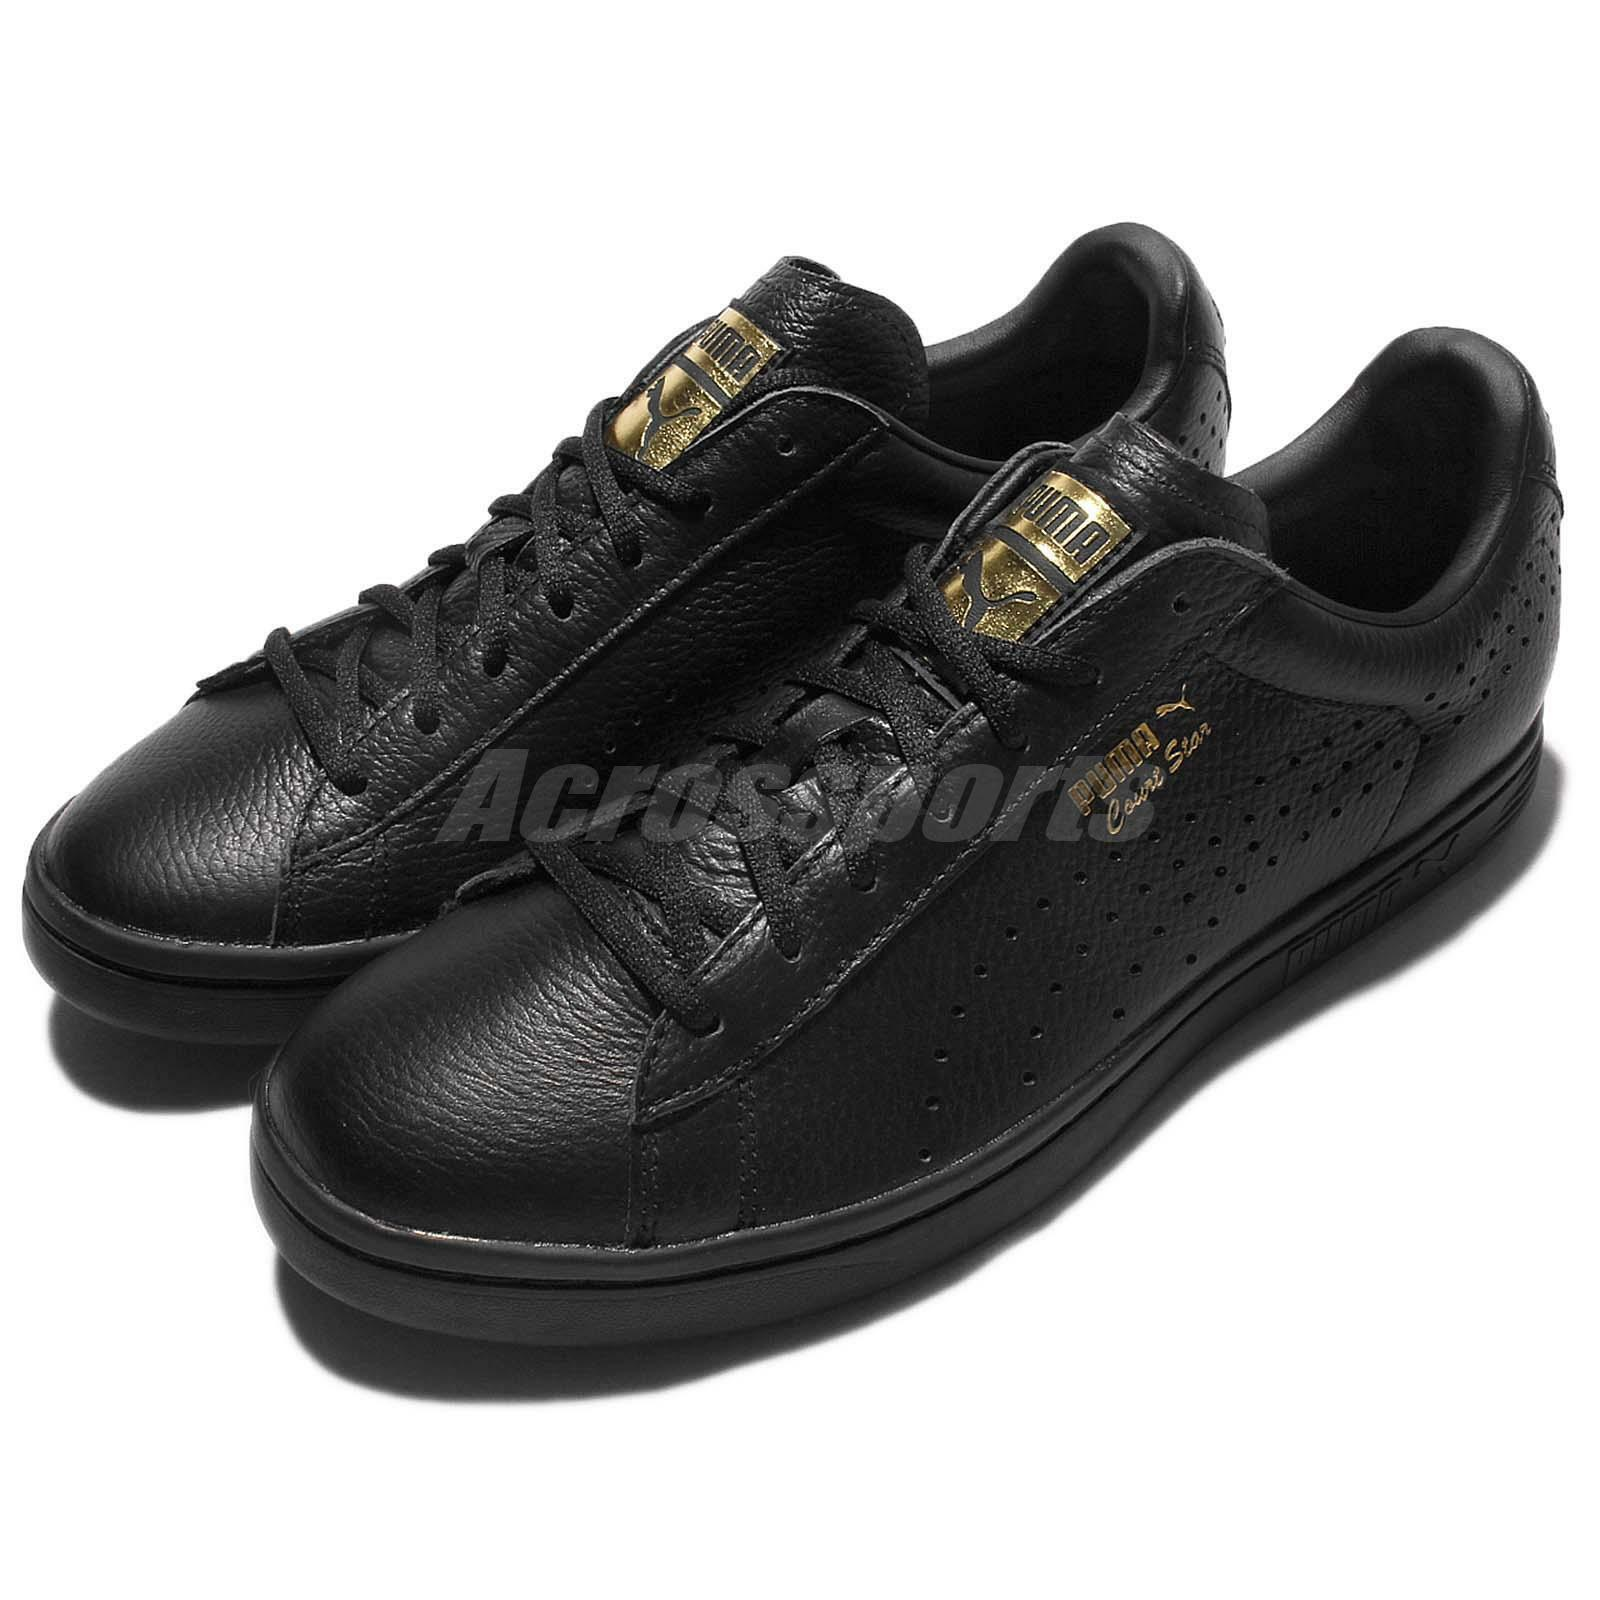 Puma Court Star Baskets Gold Triple Noir Hommes Casual Chaussures Baskets Star Trainers 361051-01 8f6719